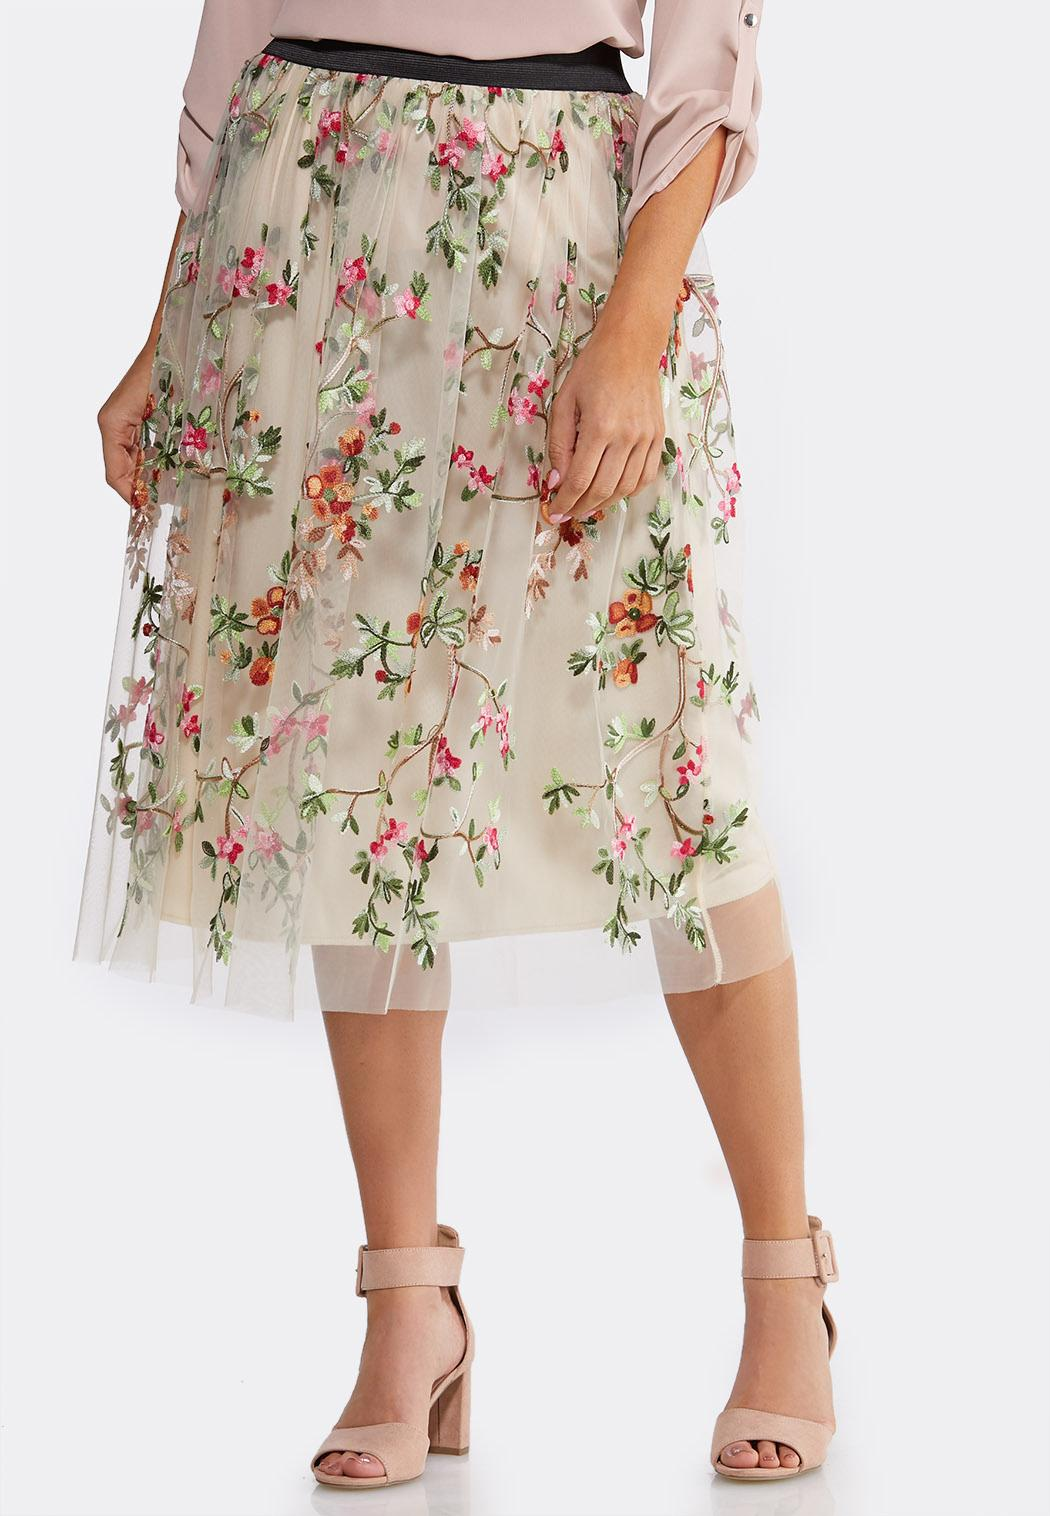 Plus Size Embroidered Floral Skirt